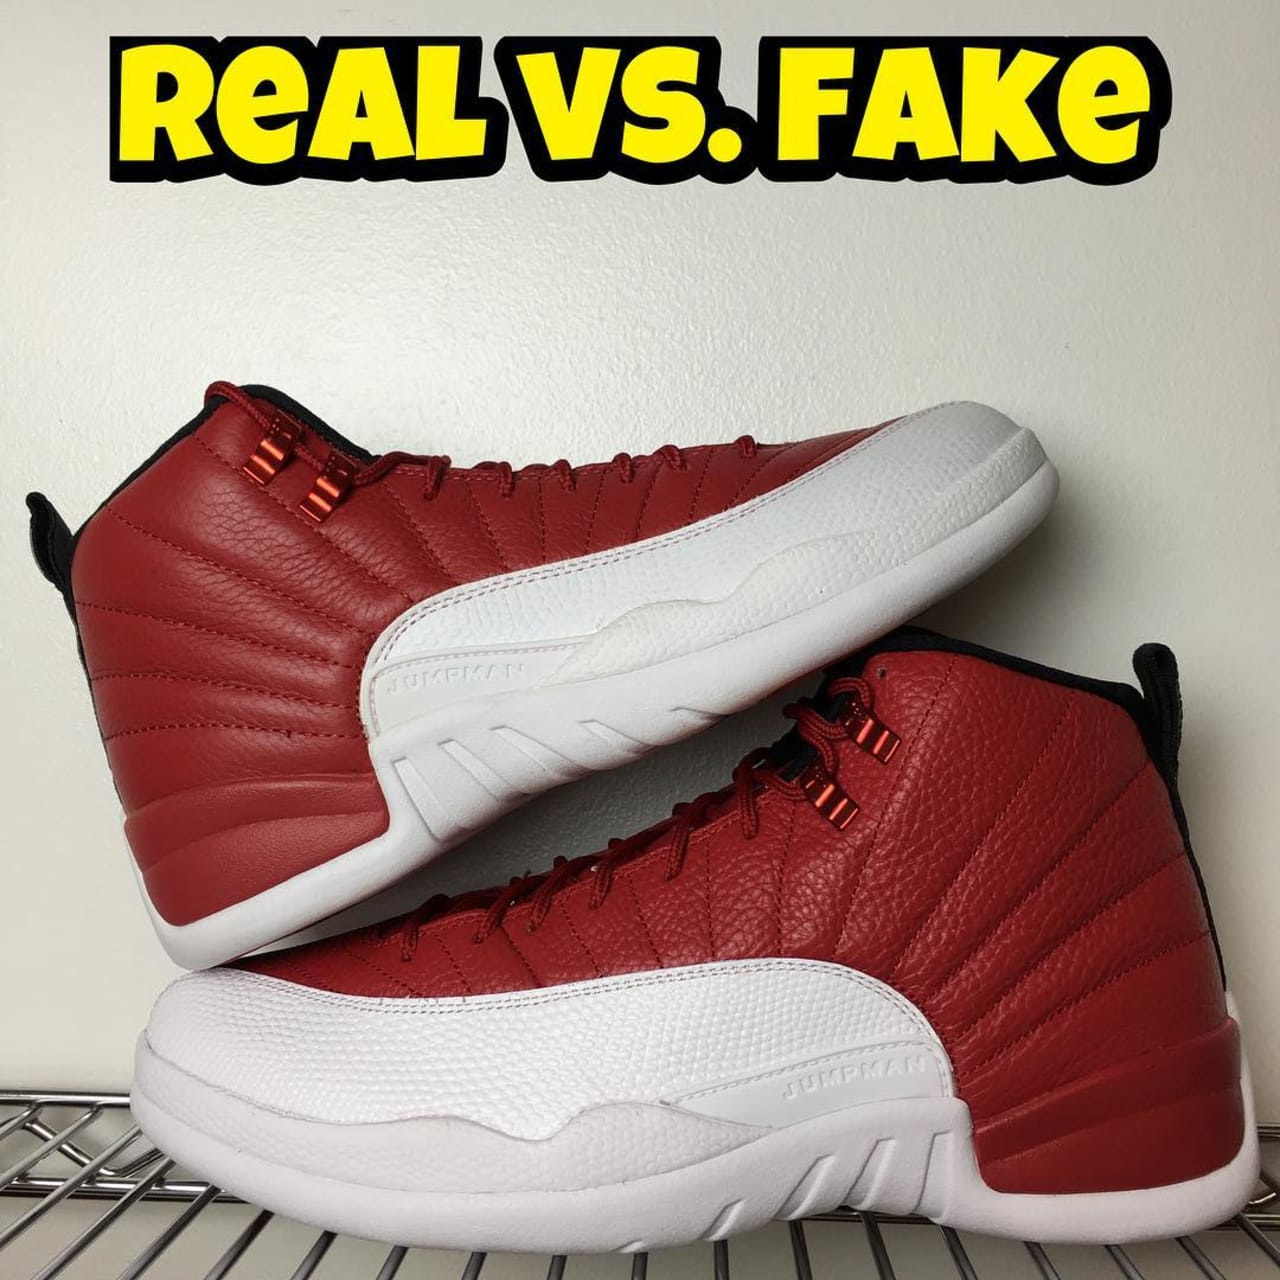 Air Jordan XII 12 Gym Red Real Fake Legit Check   Sole Collector